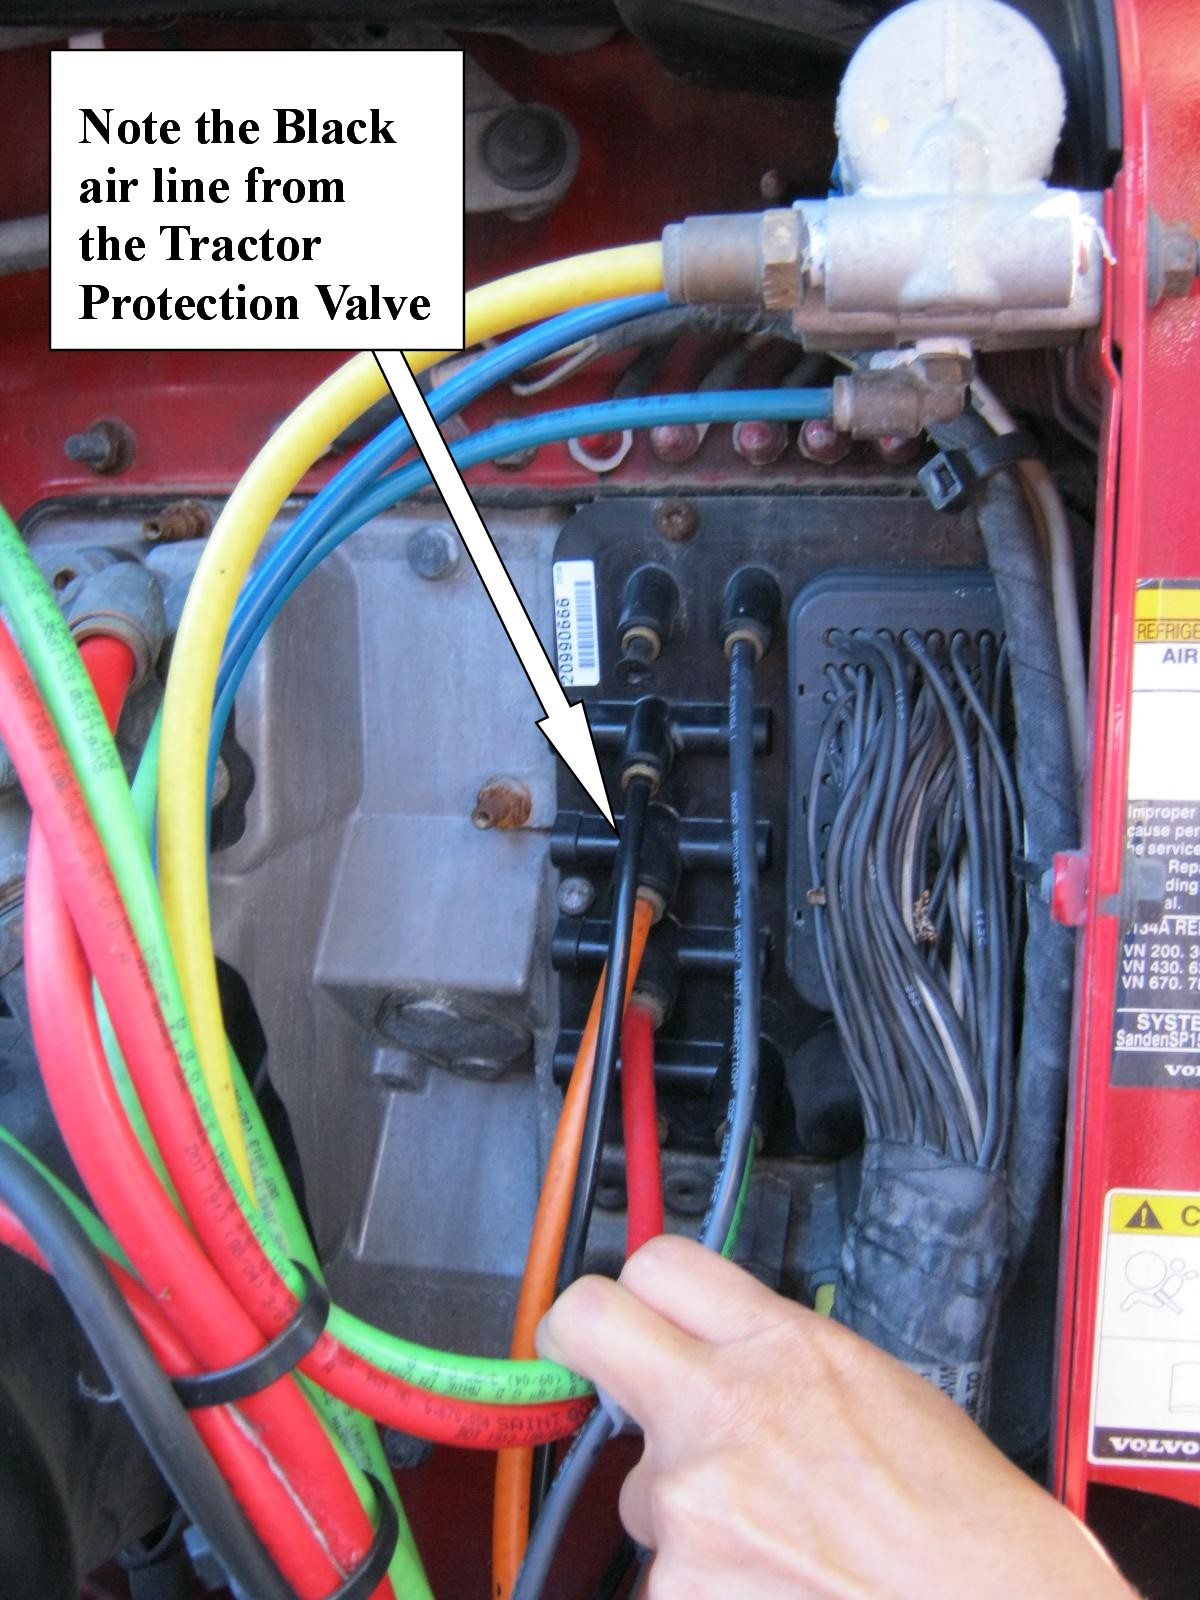 2007 Volvo Vnl 630 Battery Wiring Diagram 41 Images J1939 Maxbrakesensorgenii Dandj1 Hayes Brakesmart Maxbrake Controllers Heavy Haulers Rv Resource At